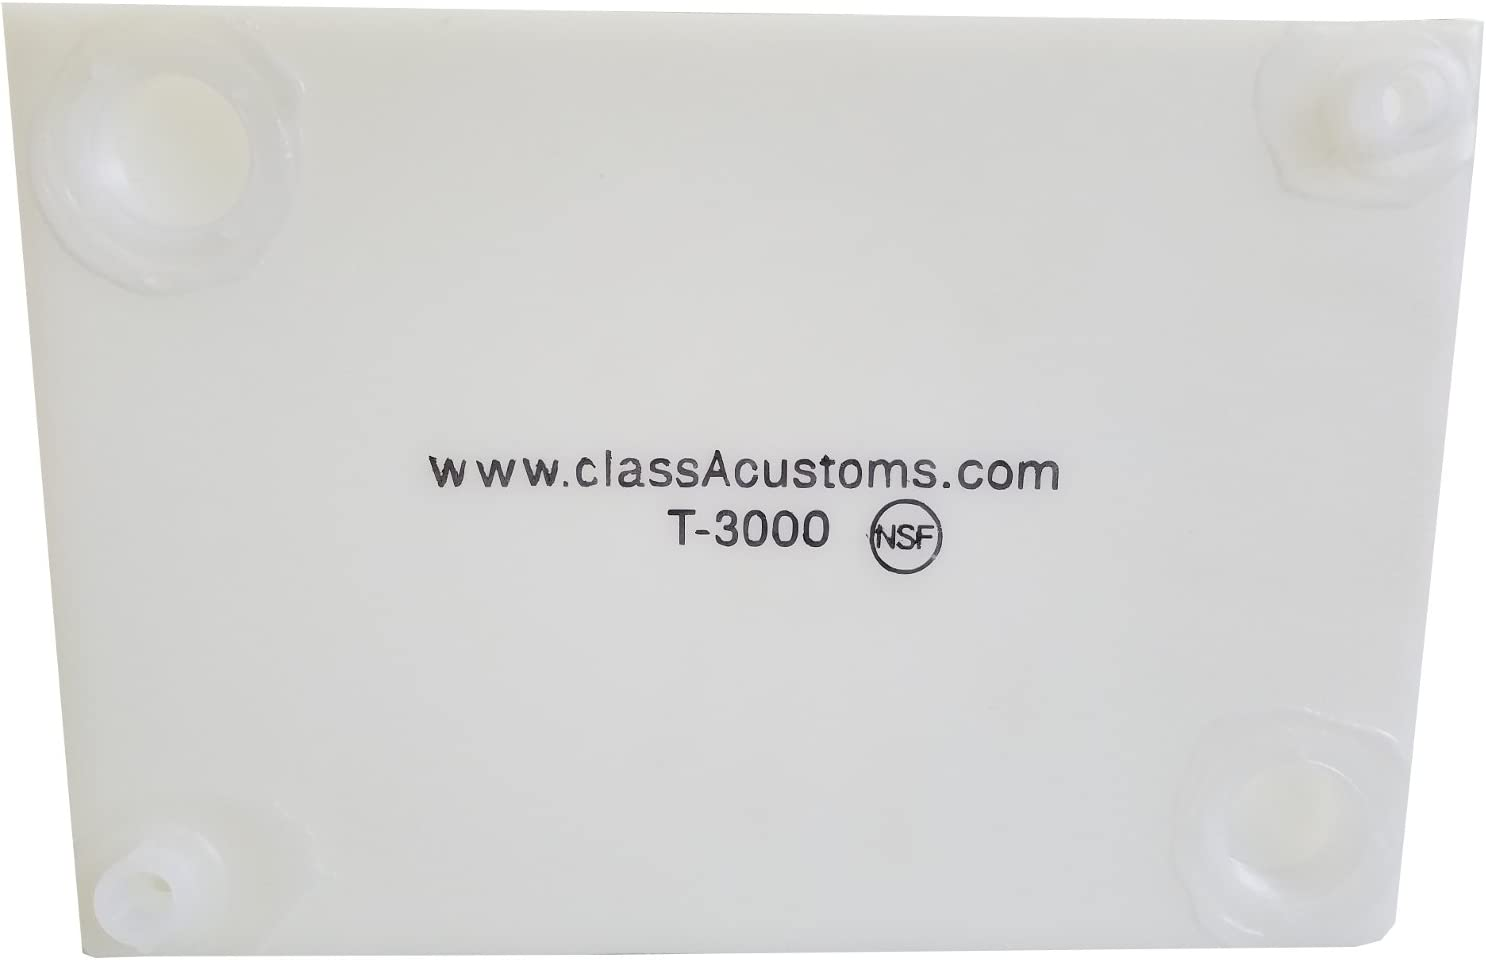 Class A Customs 30 Gallon Water Holding Tank NSF Approved T-3000